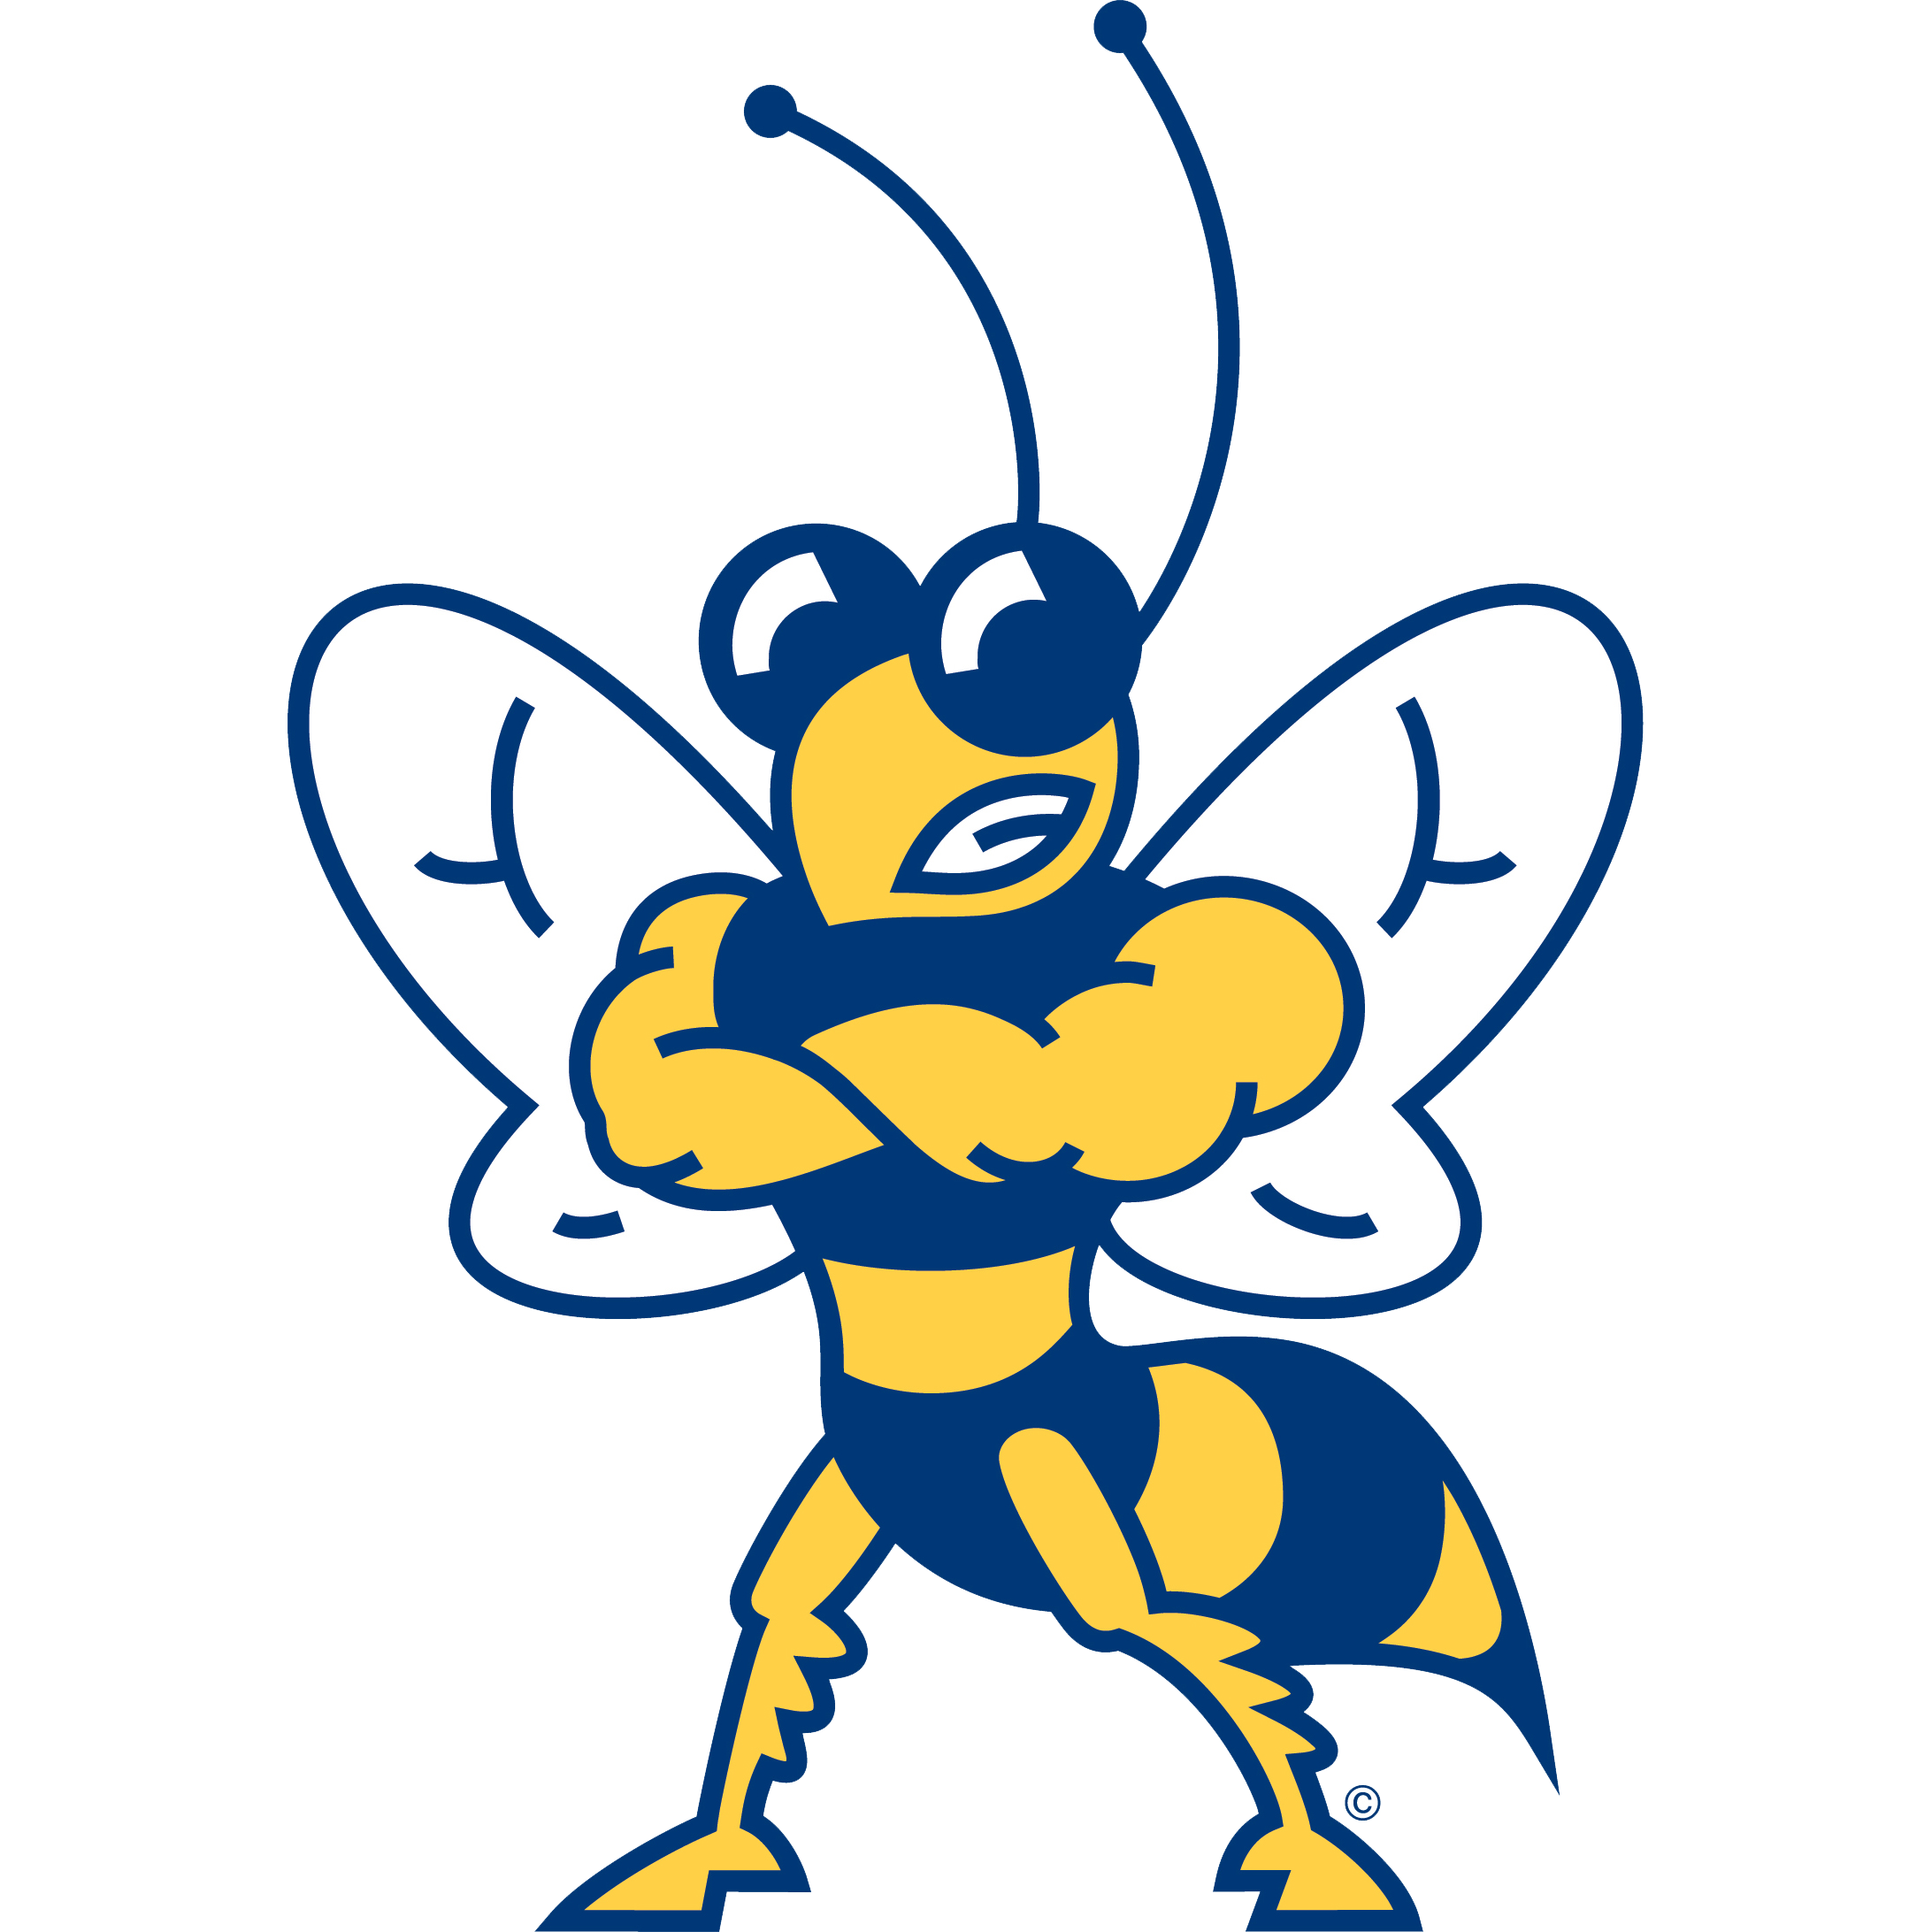 Football snake man clipart freeuse stock Howard Payne Yellow Jackets - 2017 Schedule, Stats & Latest News ... freeuse stock